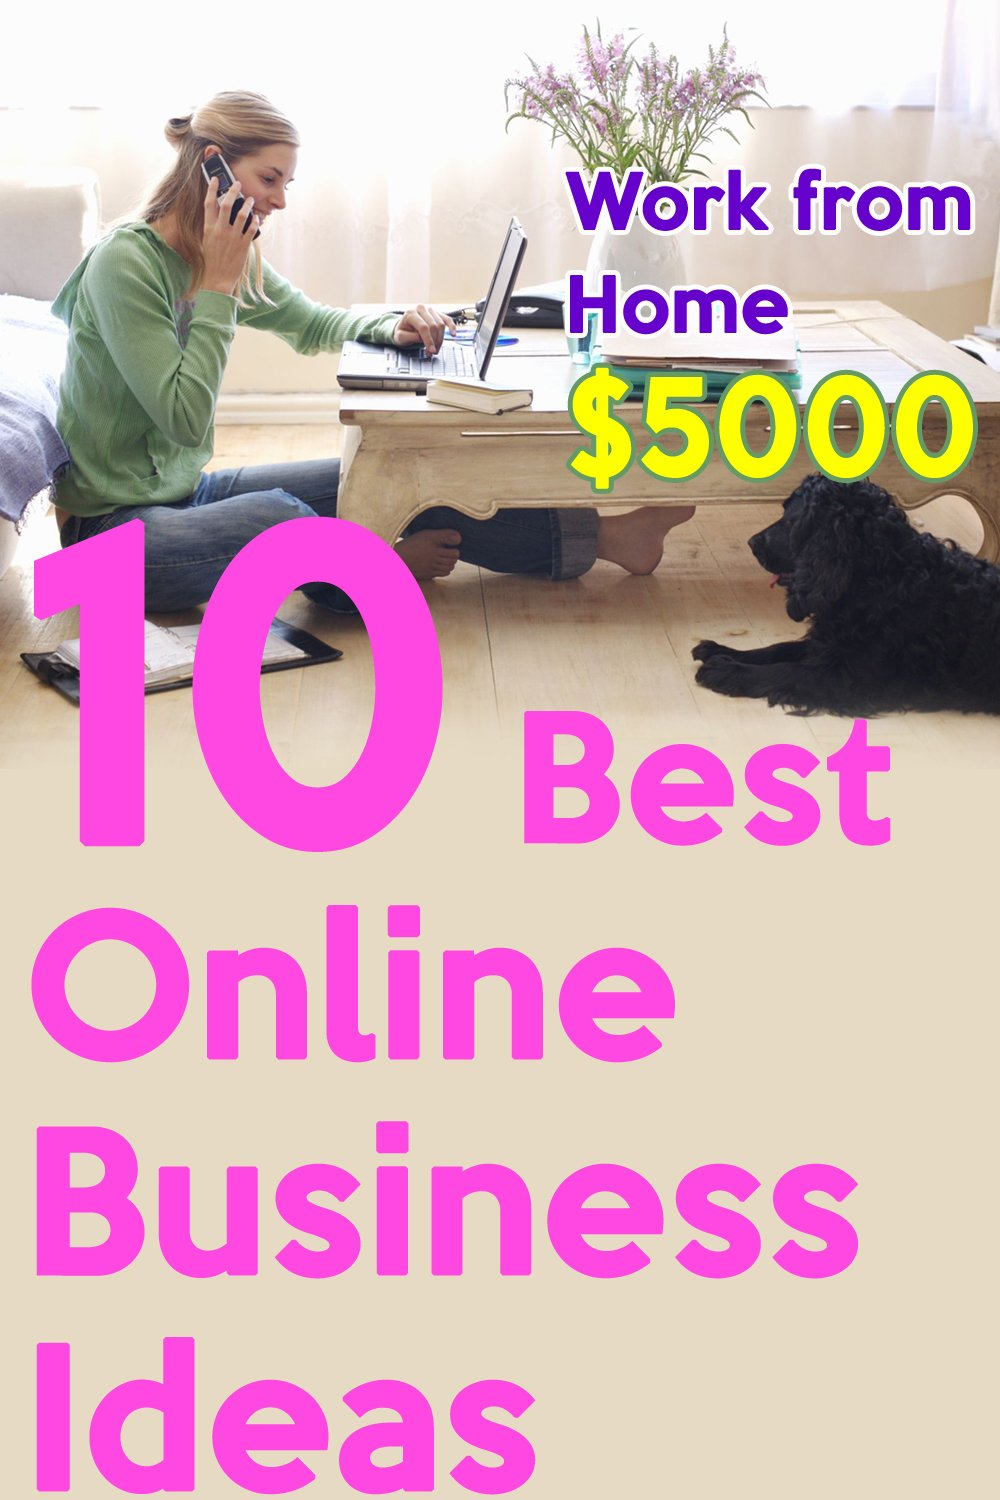 10 Best Online Business Ideas to Work from Home